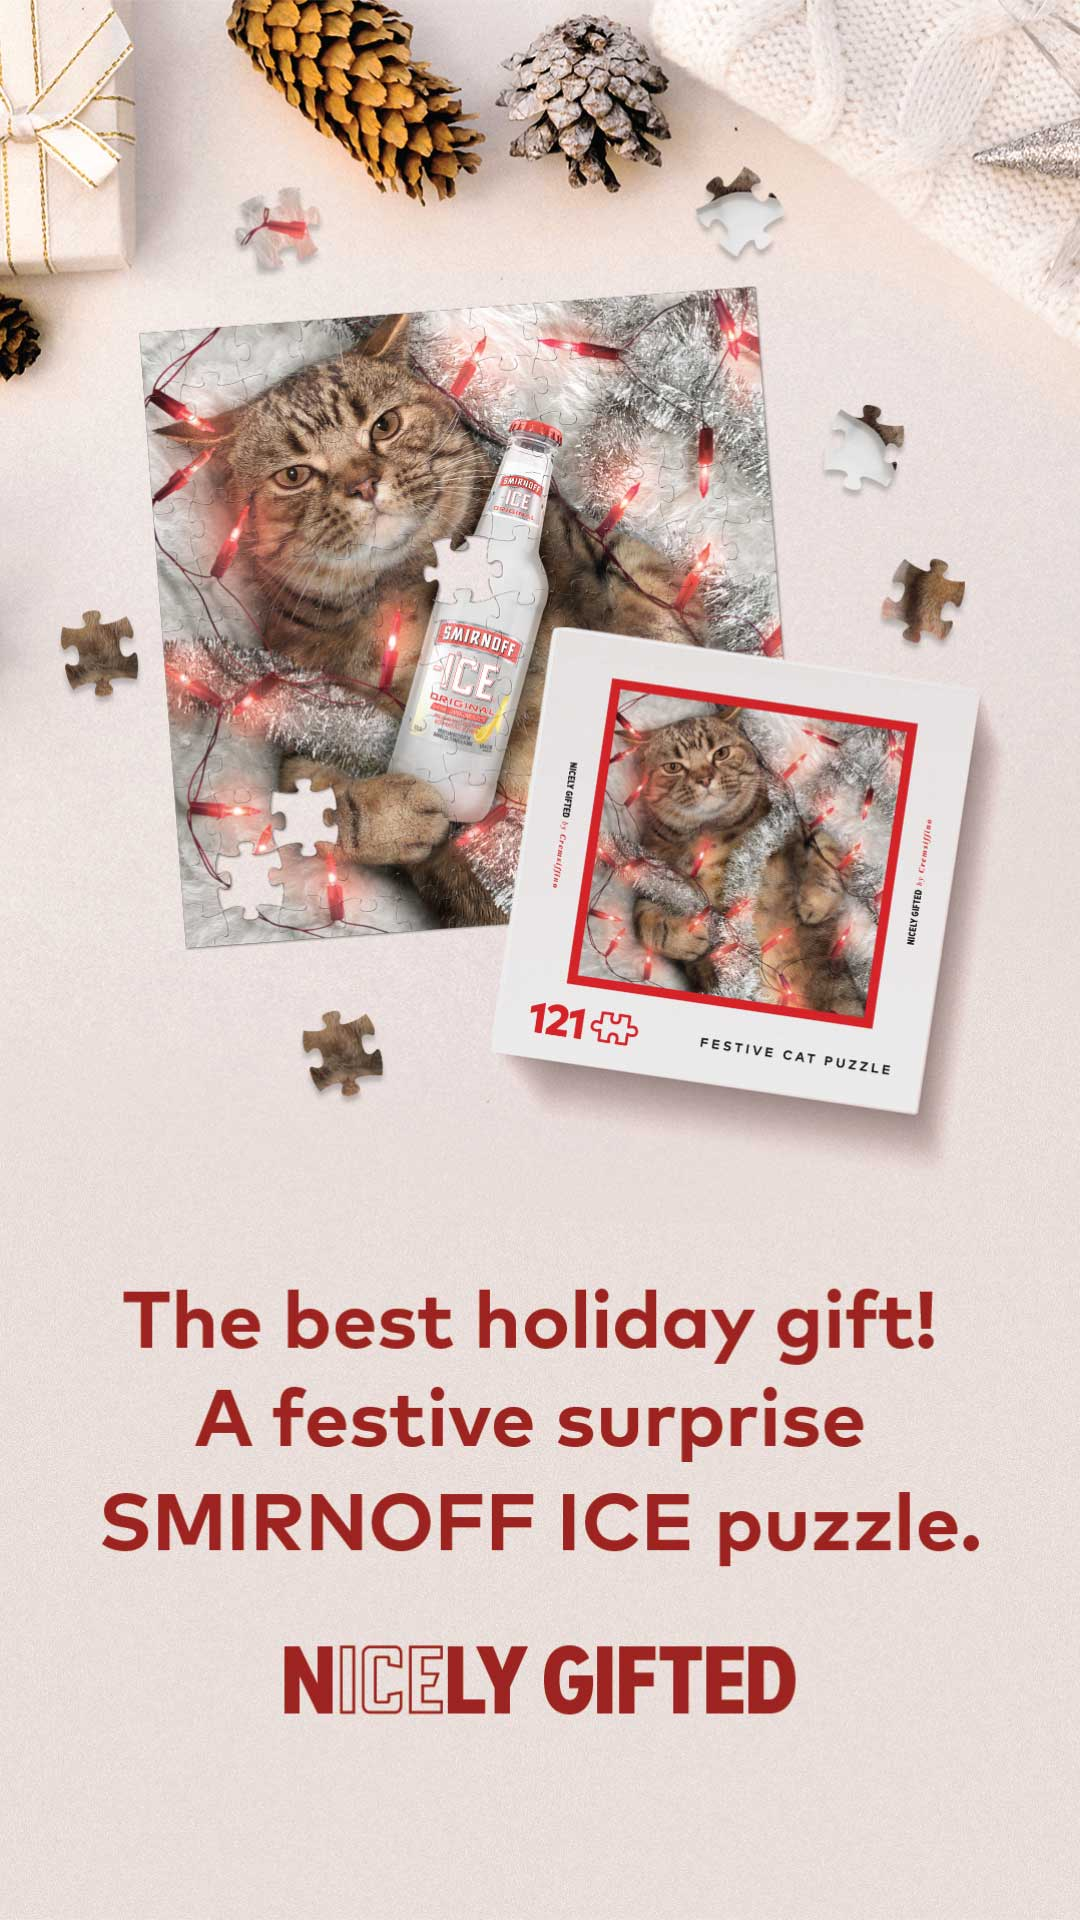 Smirnoff Ice And Luxury Home Goods Brand Cremsiffino Are Back With A Last Minute Holiday Gift Idea For Everyone On Your Nice List: Smirnoff Nicely Gifted Puzzles photo